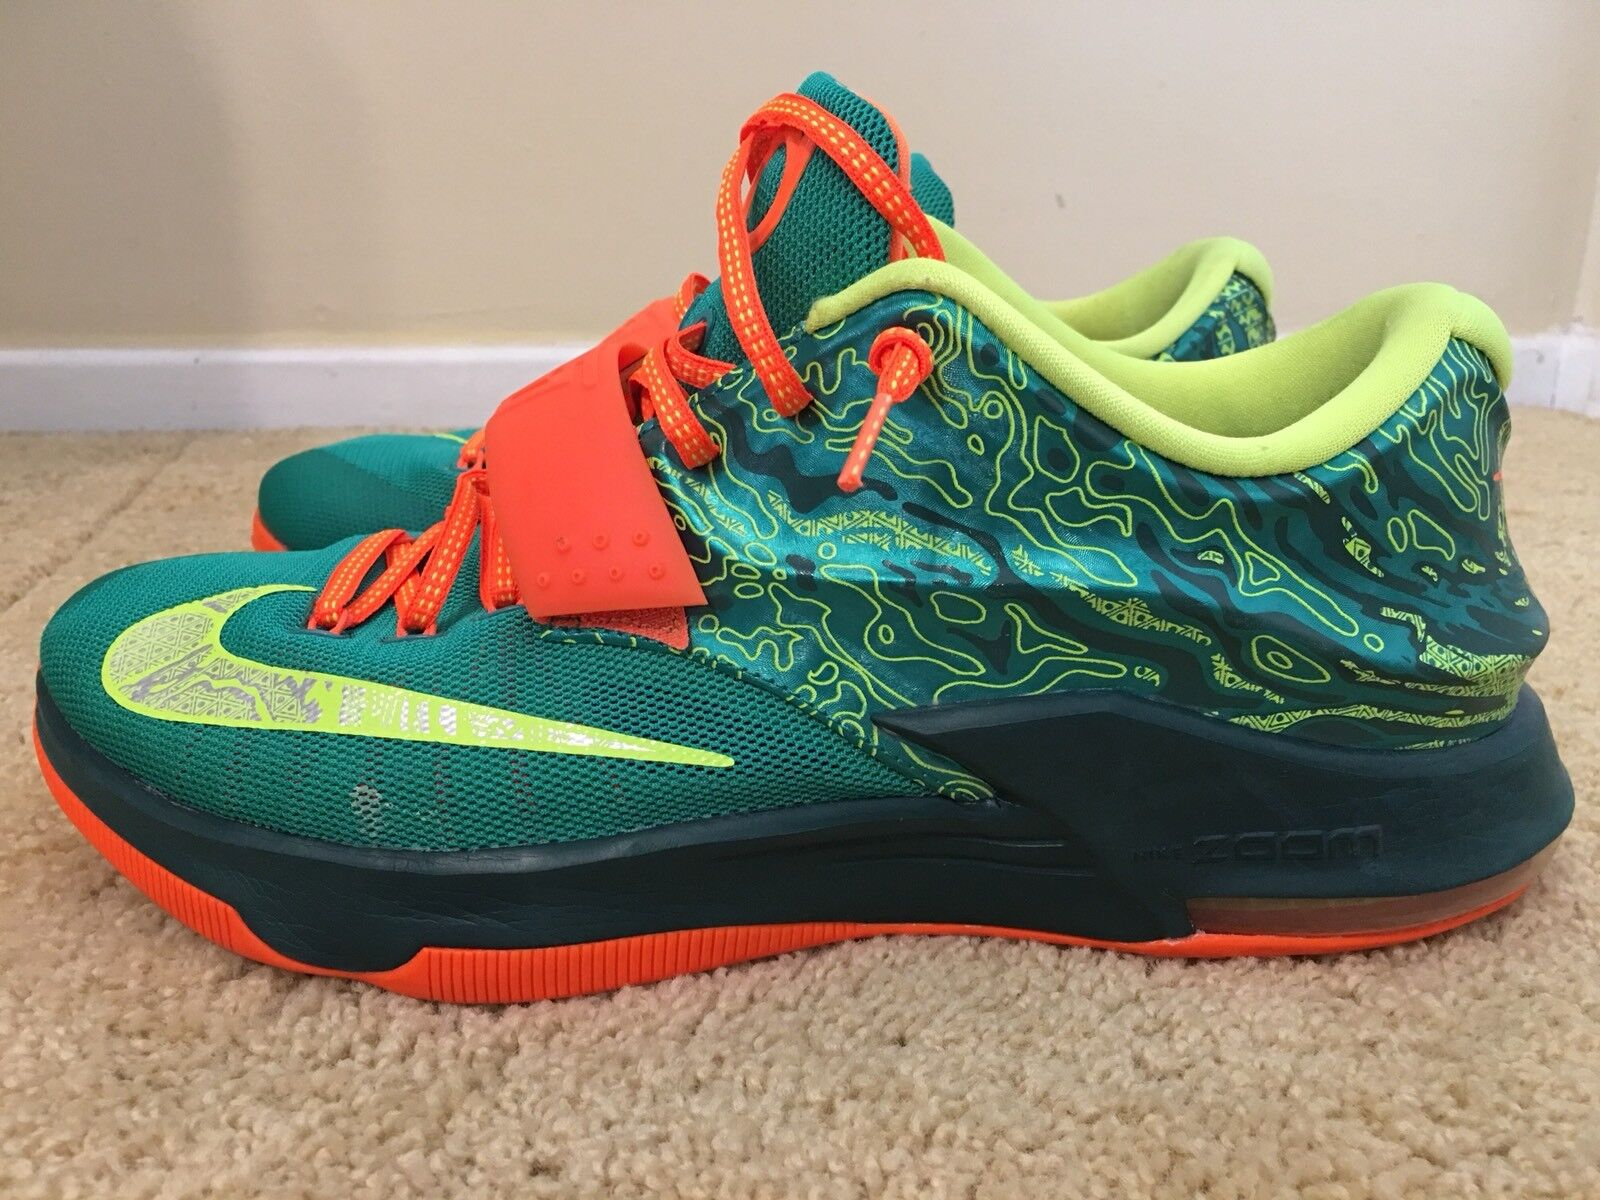 Nike KD VII Weatherman Emerald Green, 653996-303, Mens Basketball shoes, Size 13